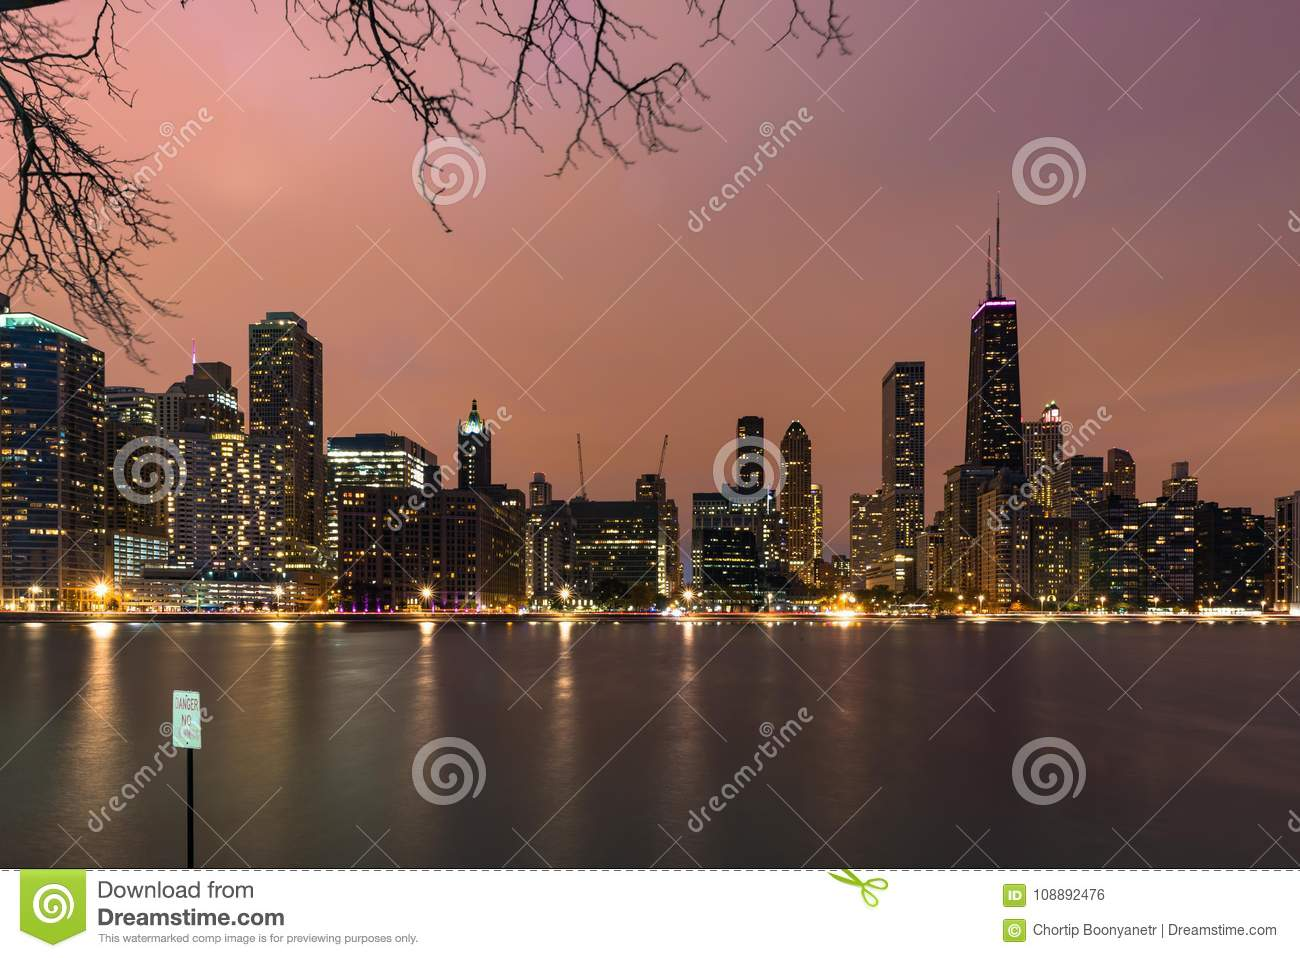 Chicago Skyline in the evening during sunset